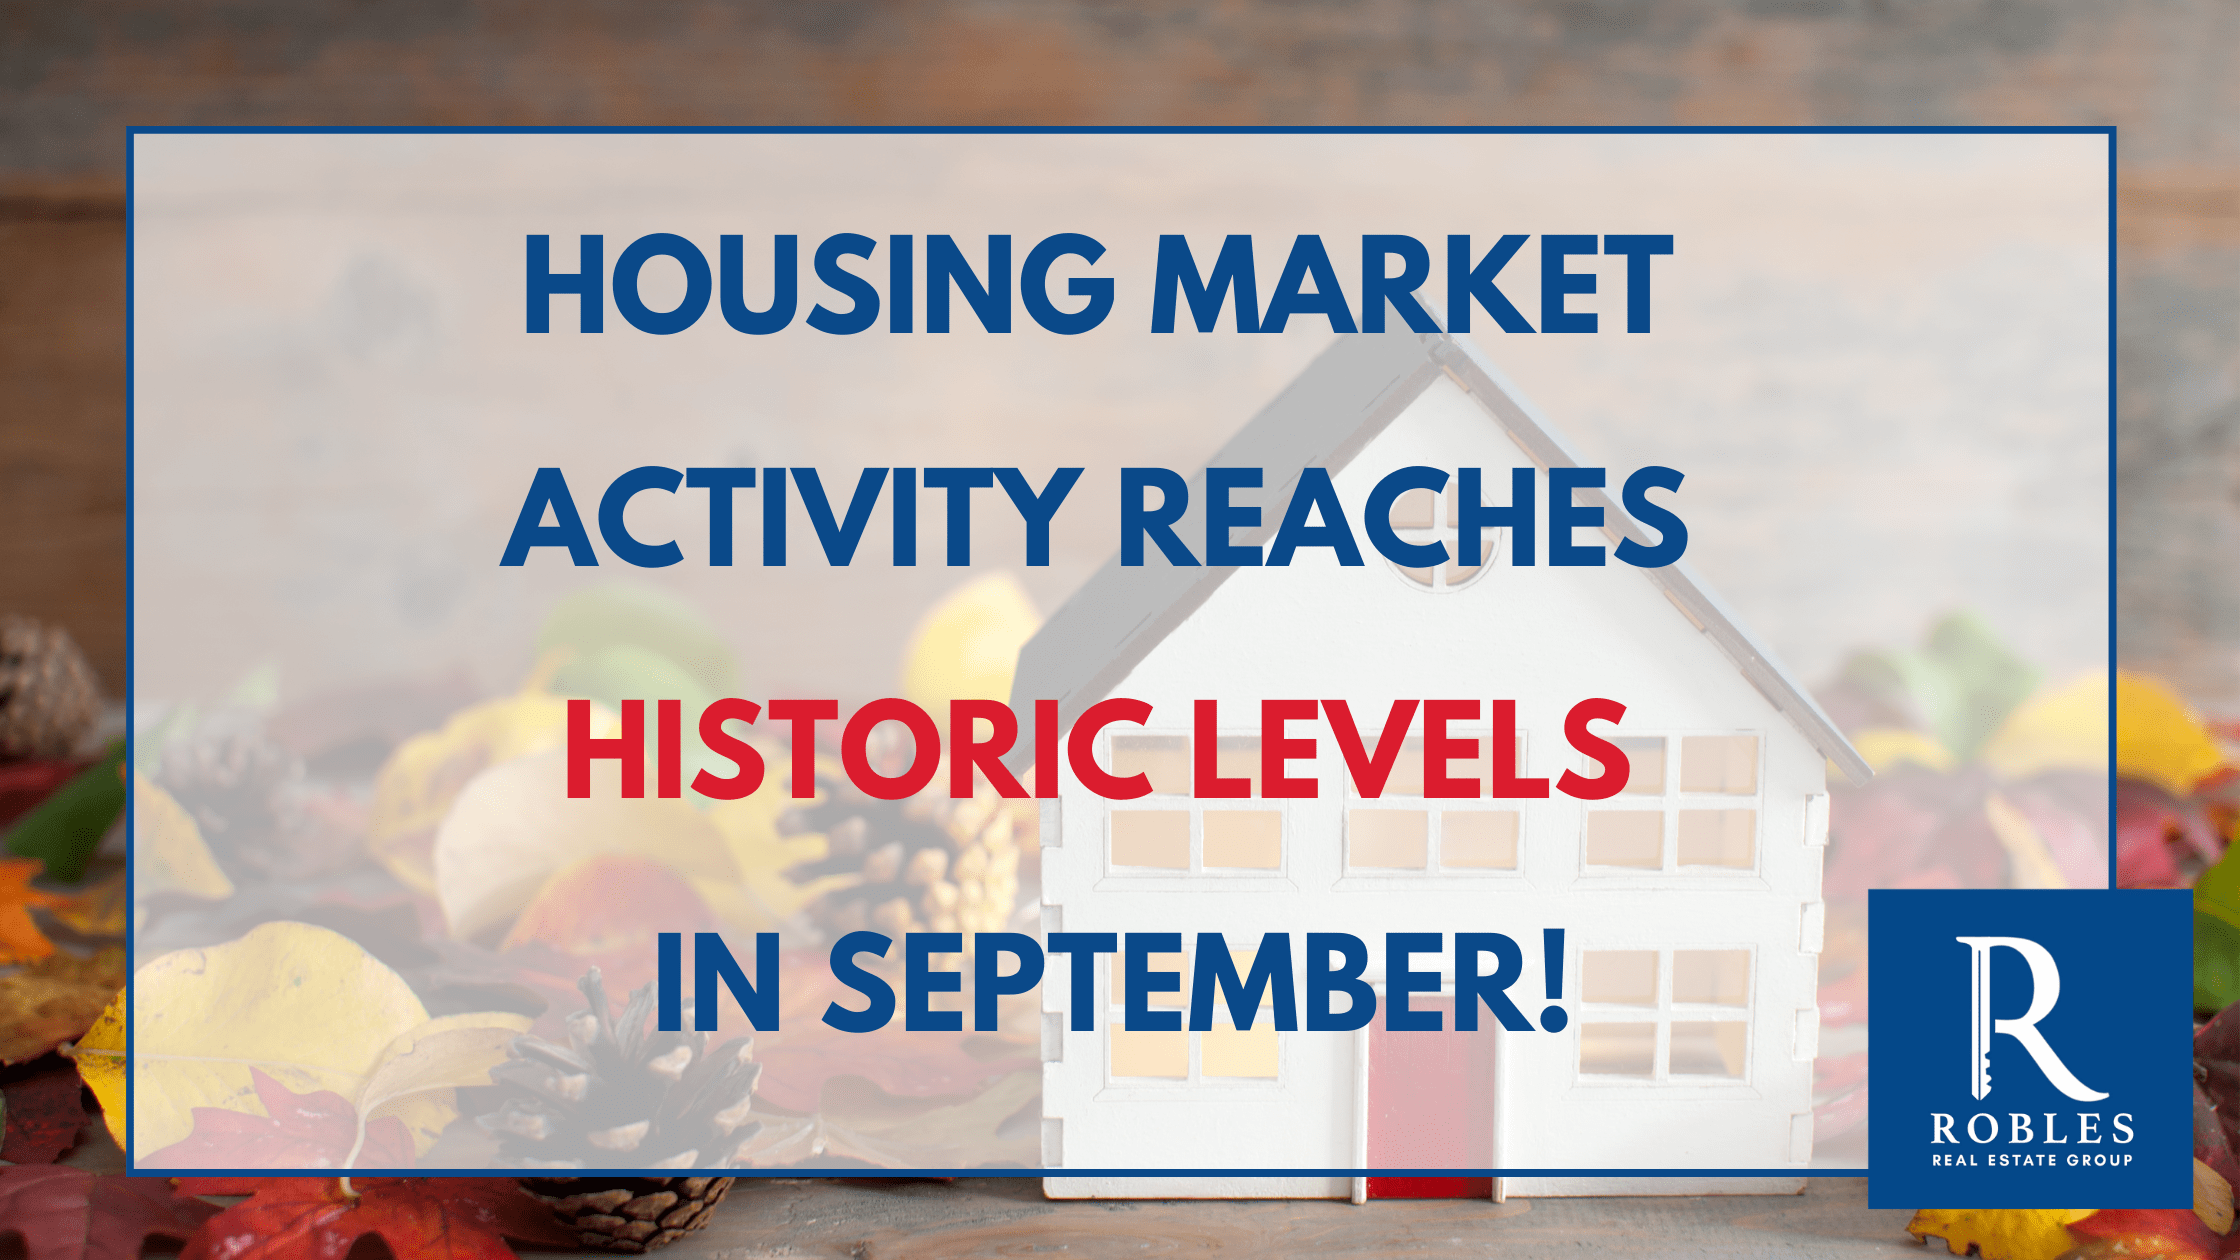 Housing Market Activity Reaches Historic Peak Levels